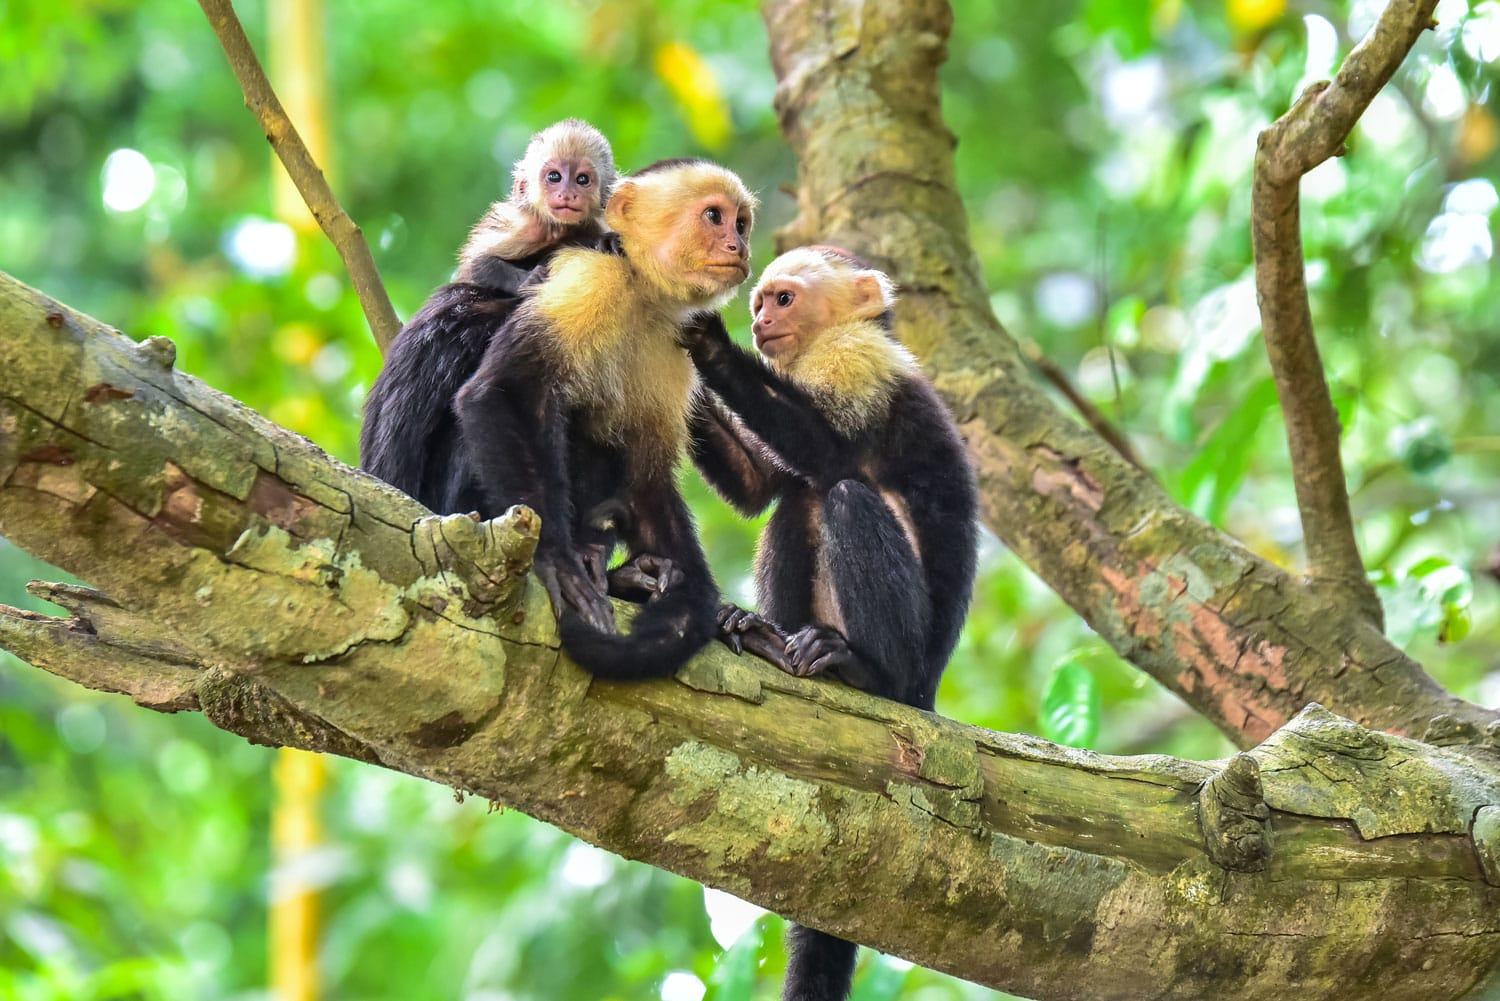 Capuchin Monkey on branch of tree in Costa Rica